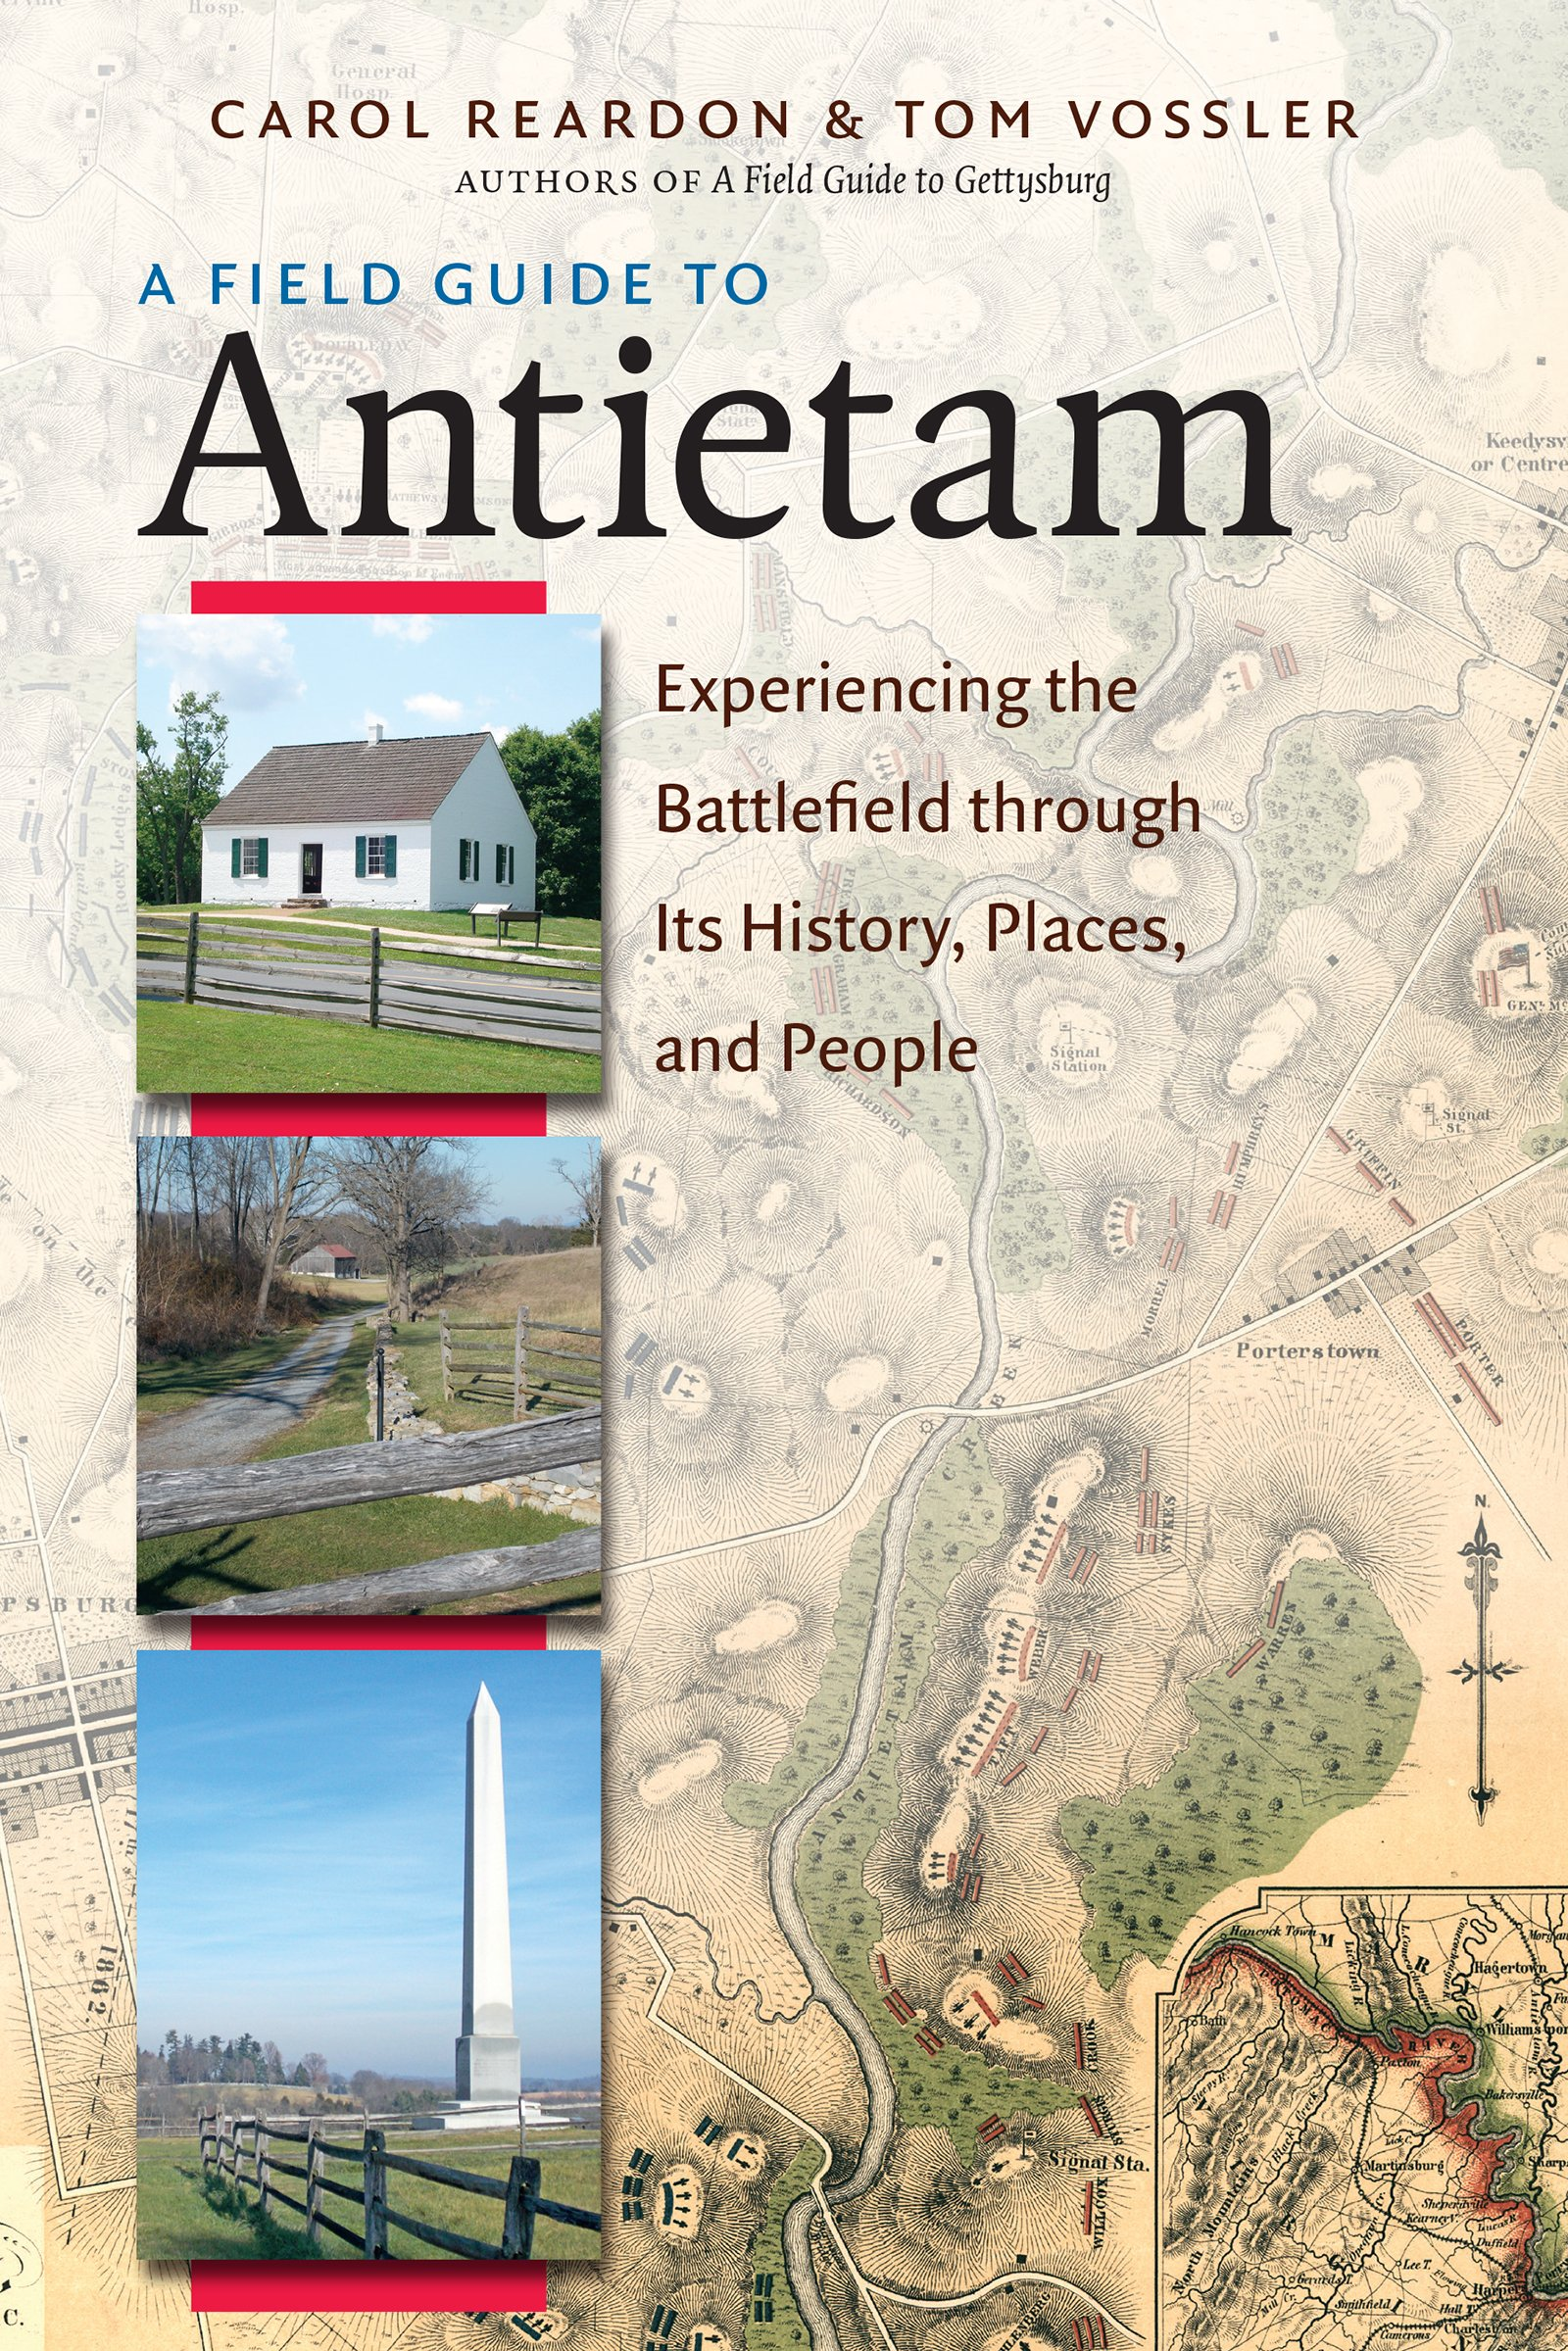 A Field Guide to Antietam: Experiencing the Battlefield through Its History, Places, and People PDF